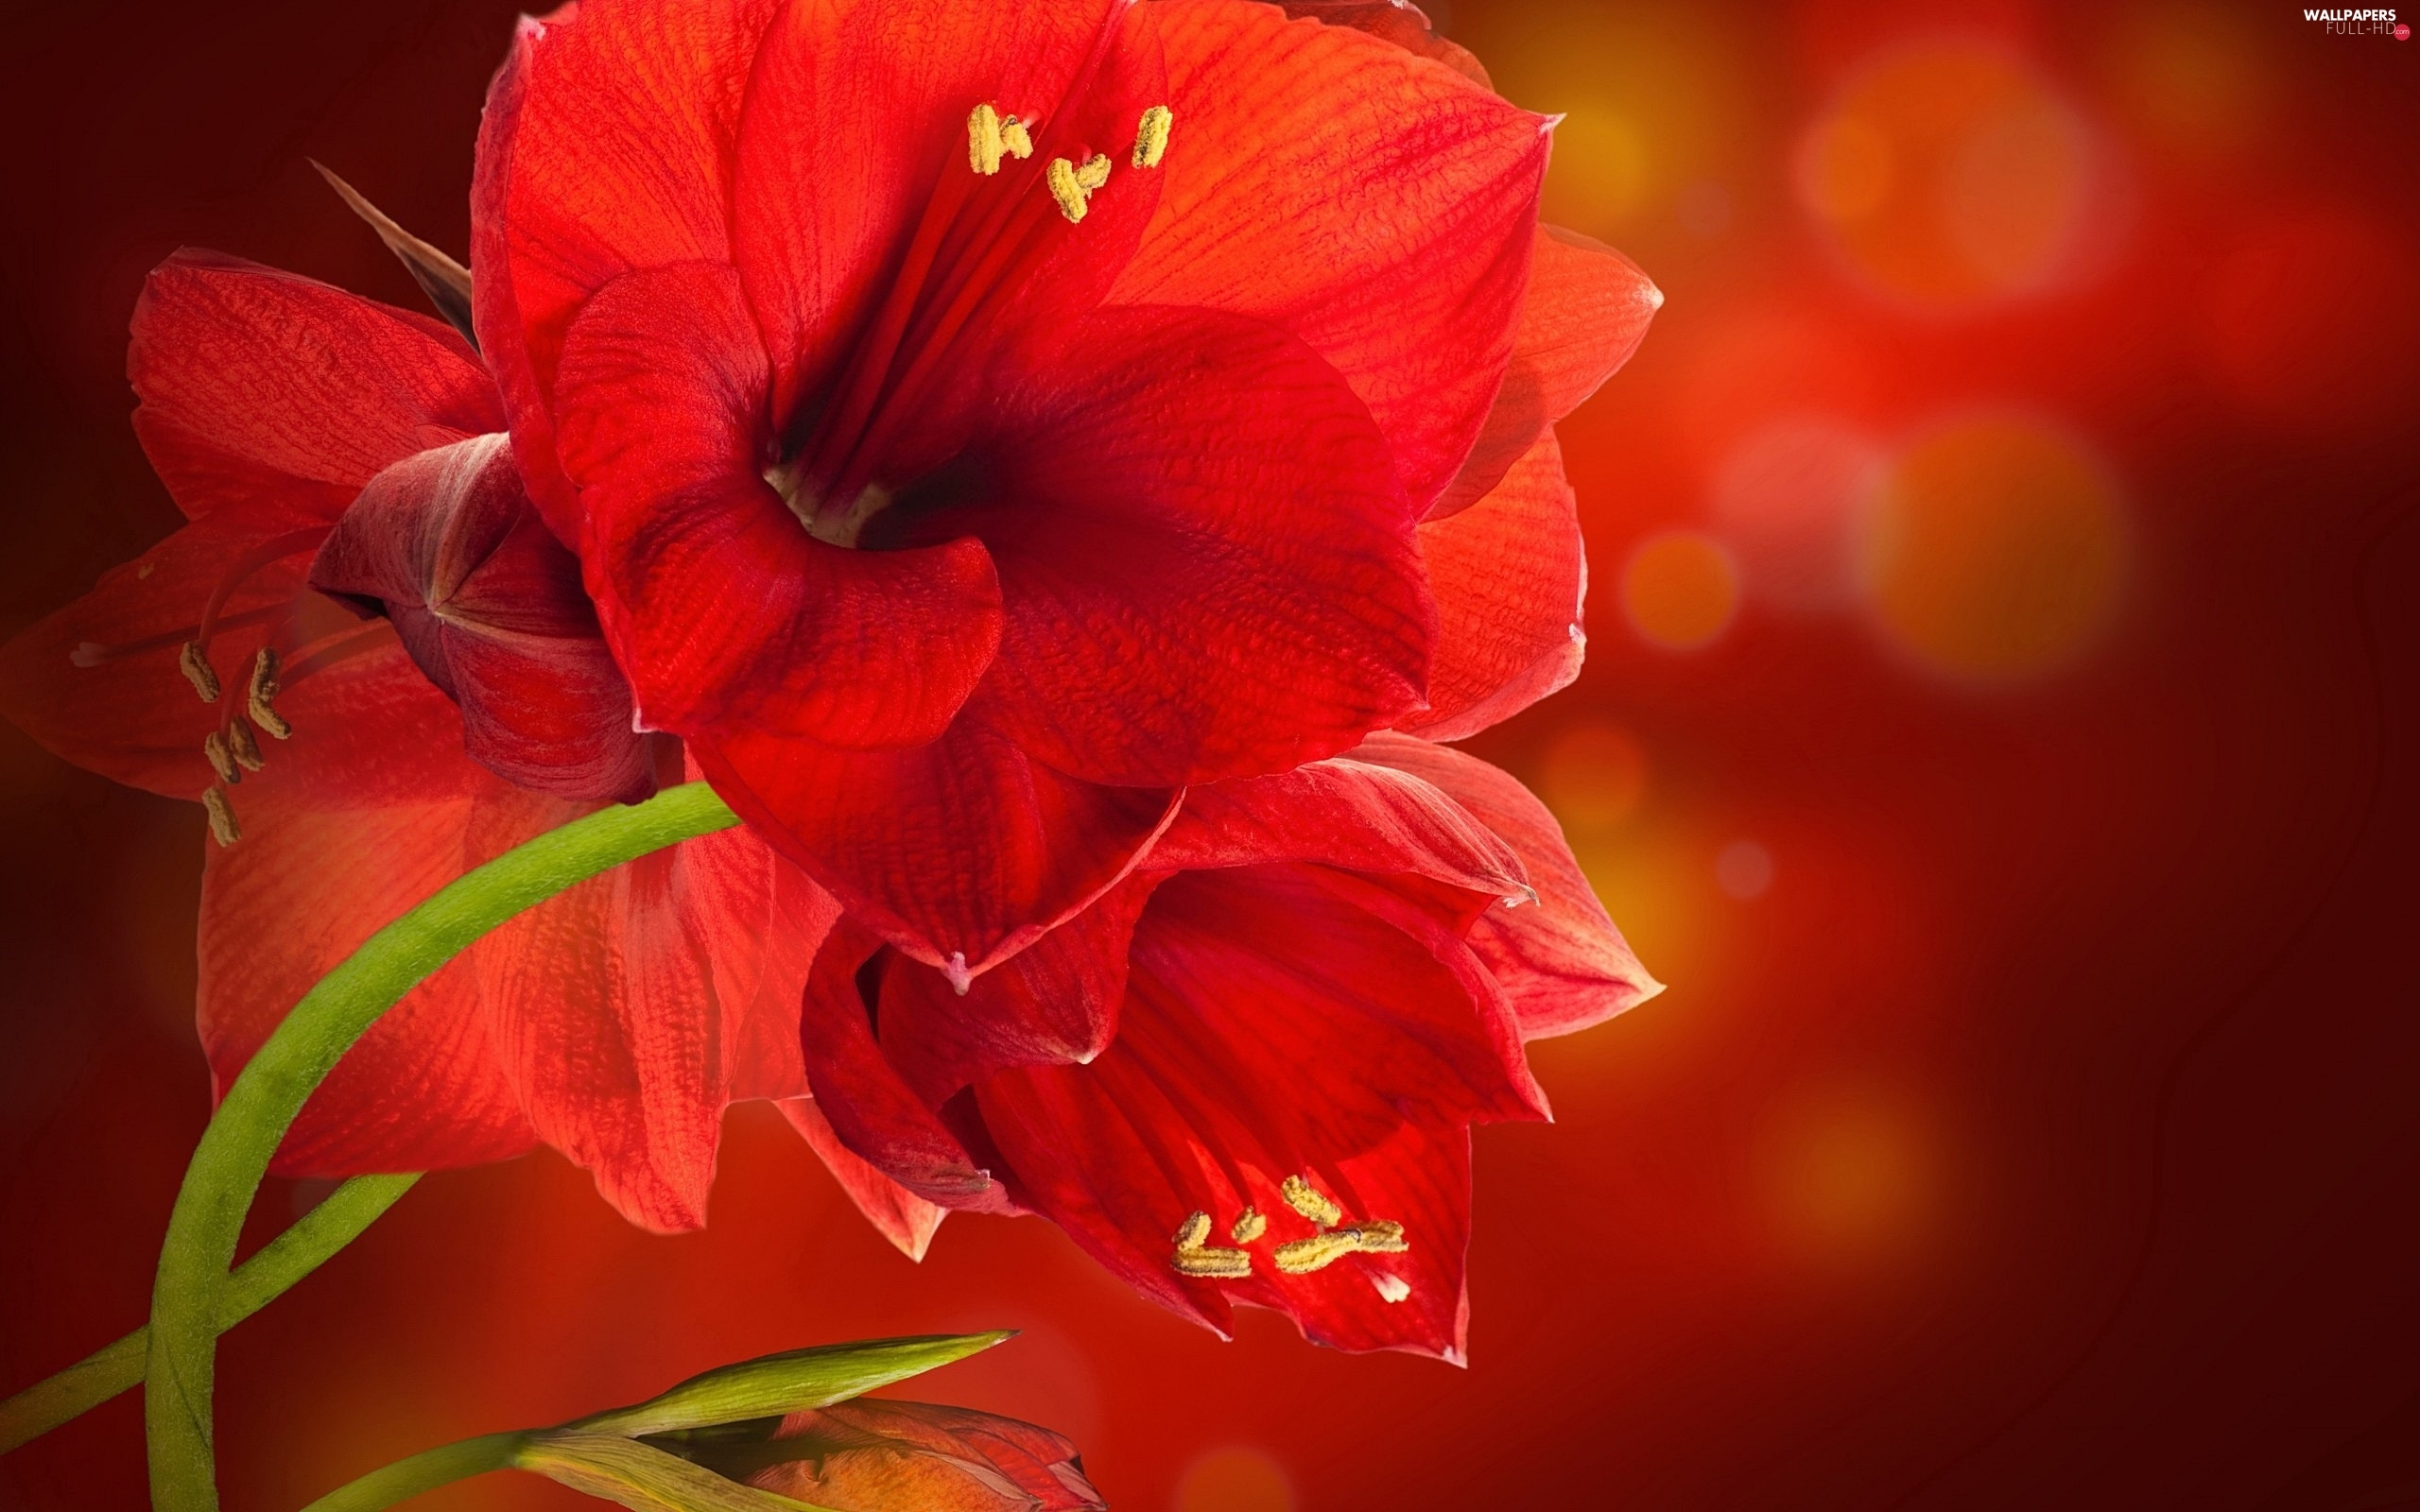 amaryllis, Red